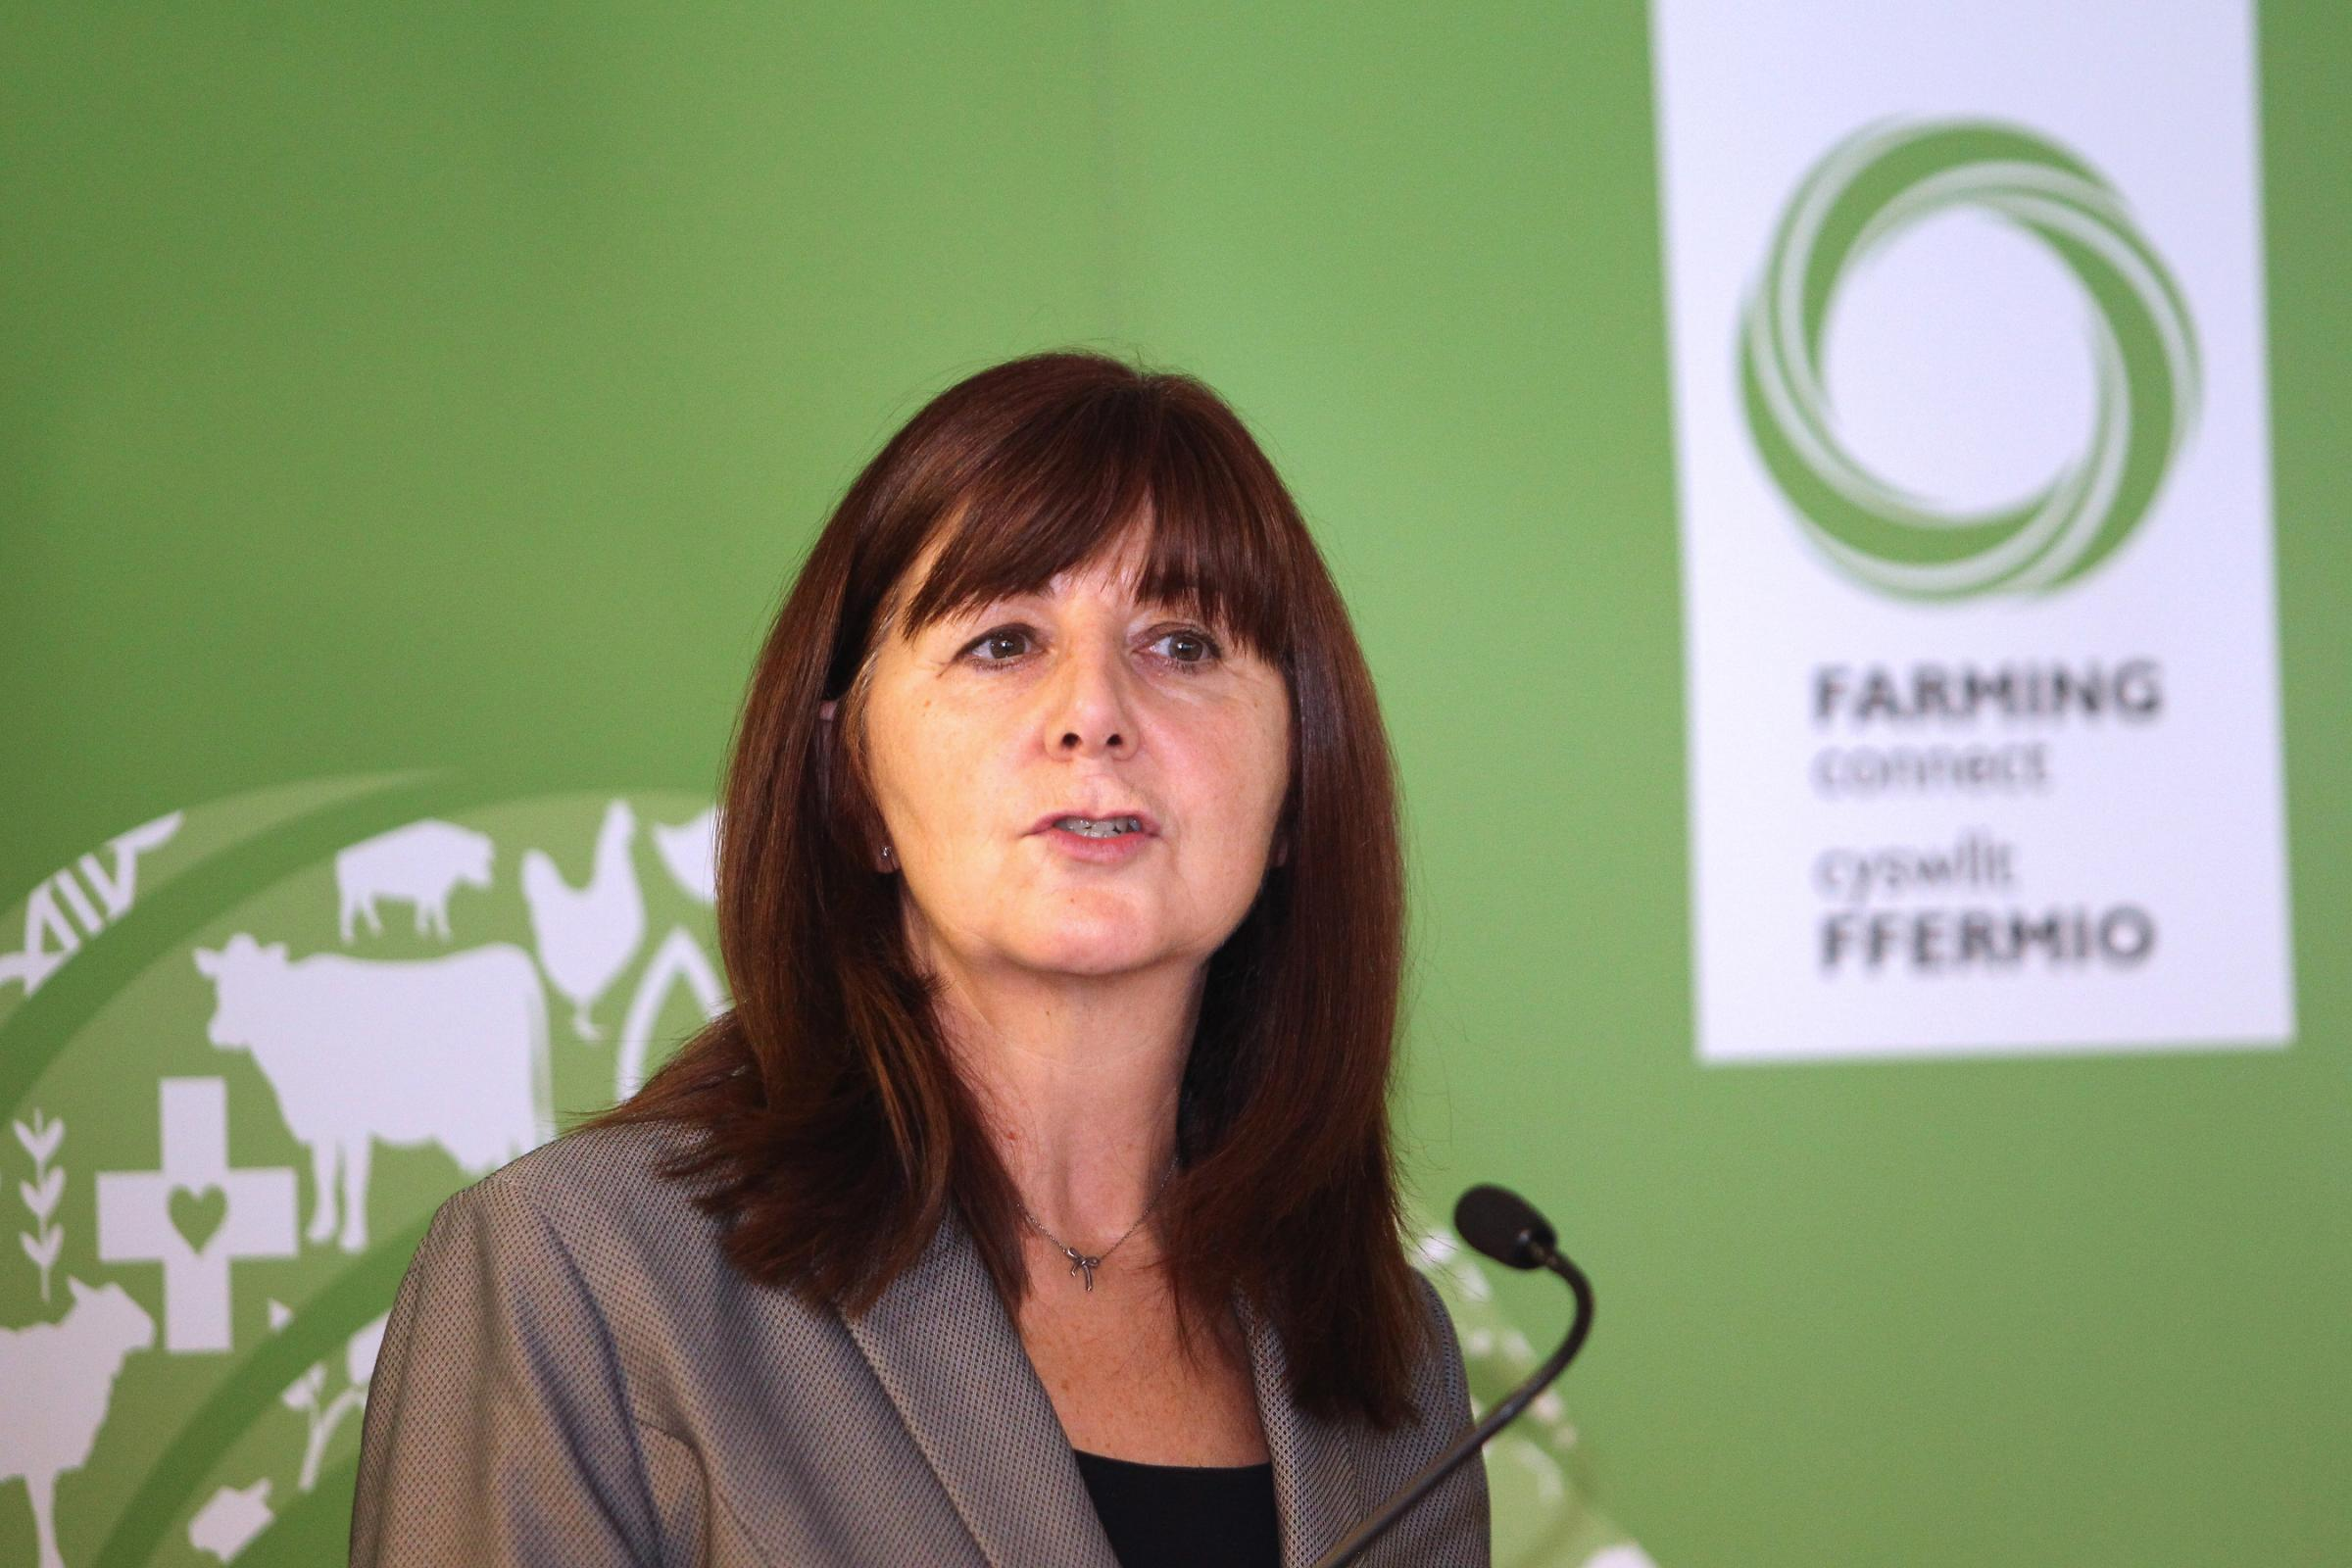 Cabinet Secretary for Energy, Planning and Rural Affairs, Lesley Griffiths. Picture: Mike Sheridan